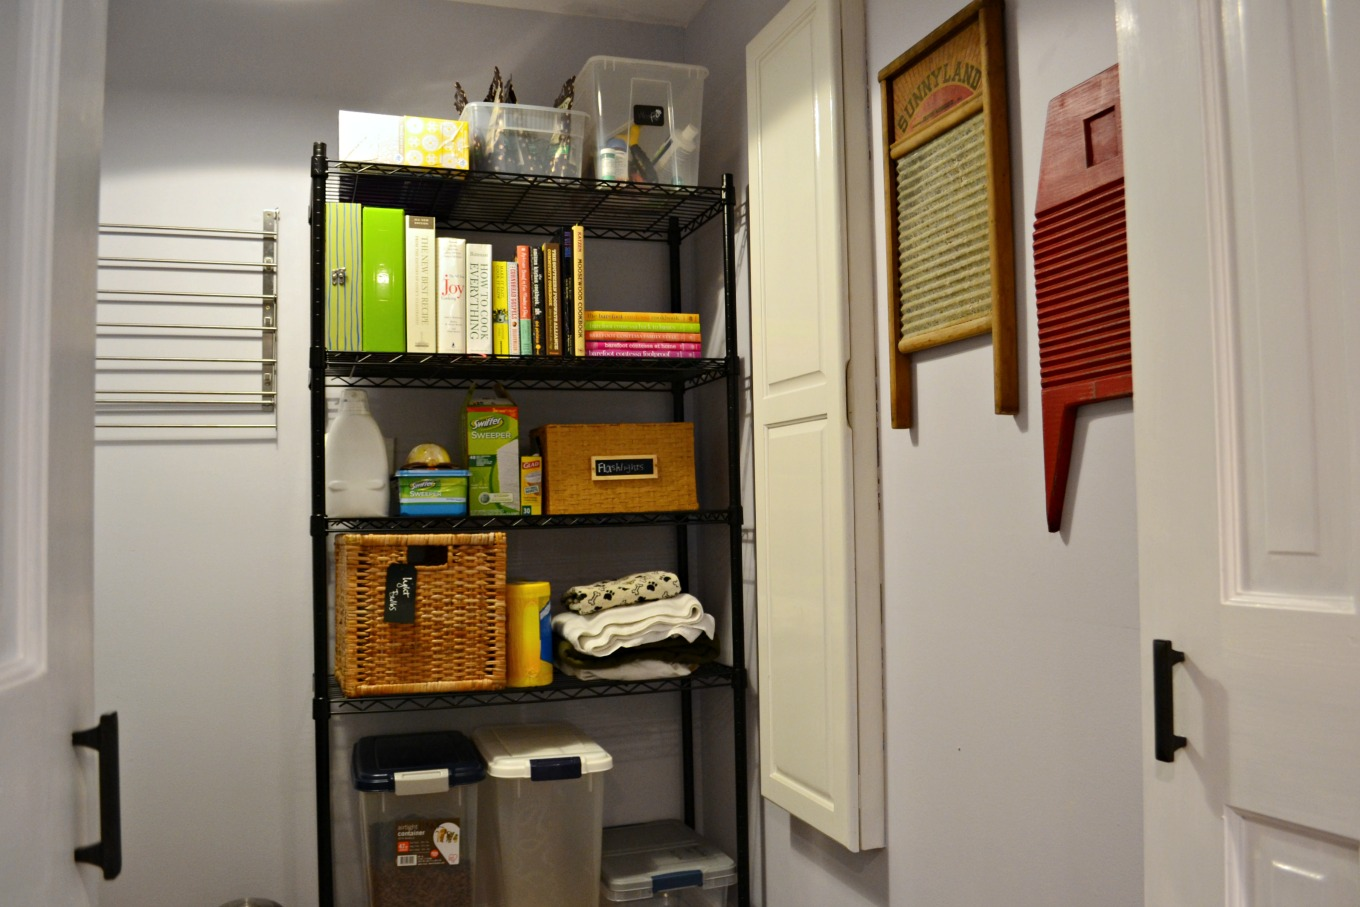 Laundry room storage after laundry room reveal - thediybungalow.com